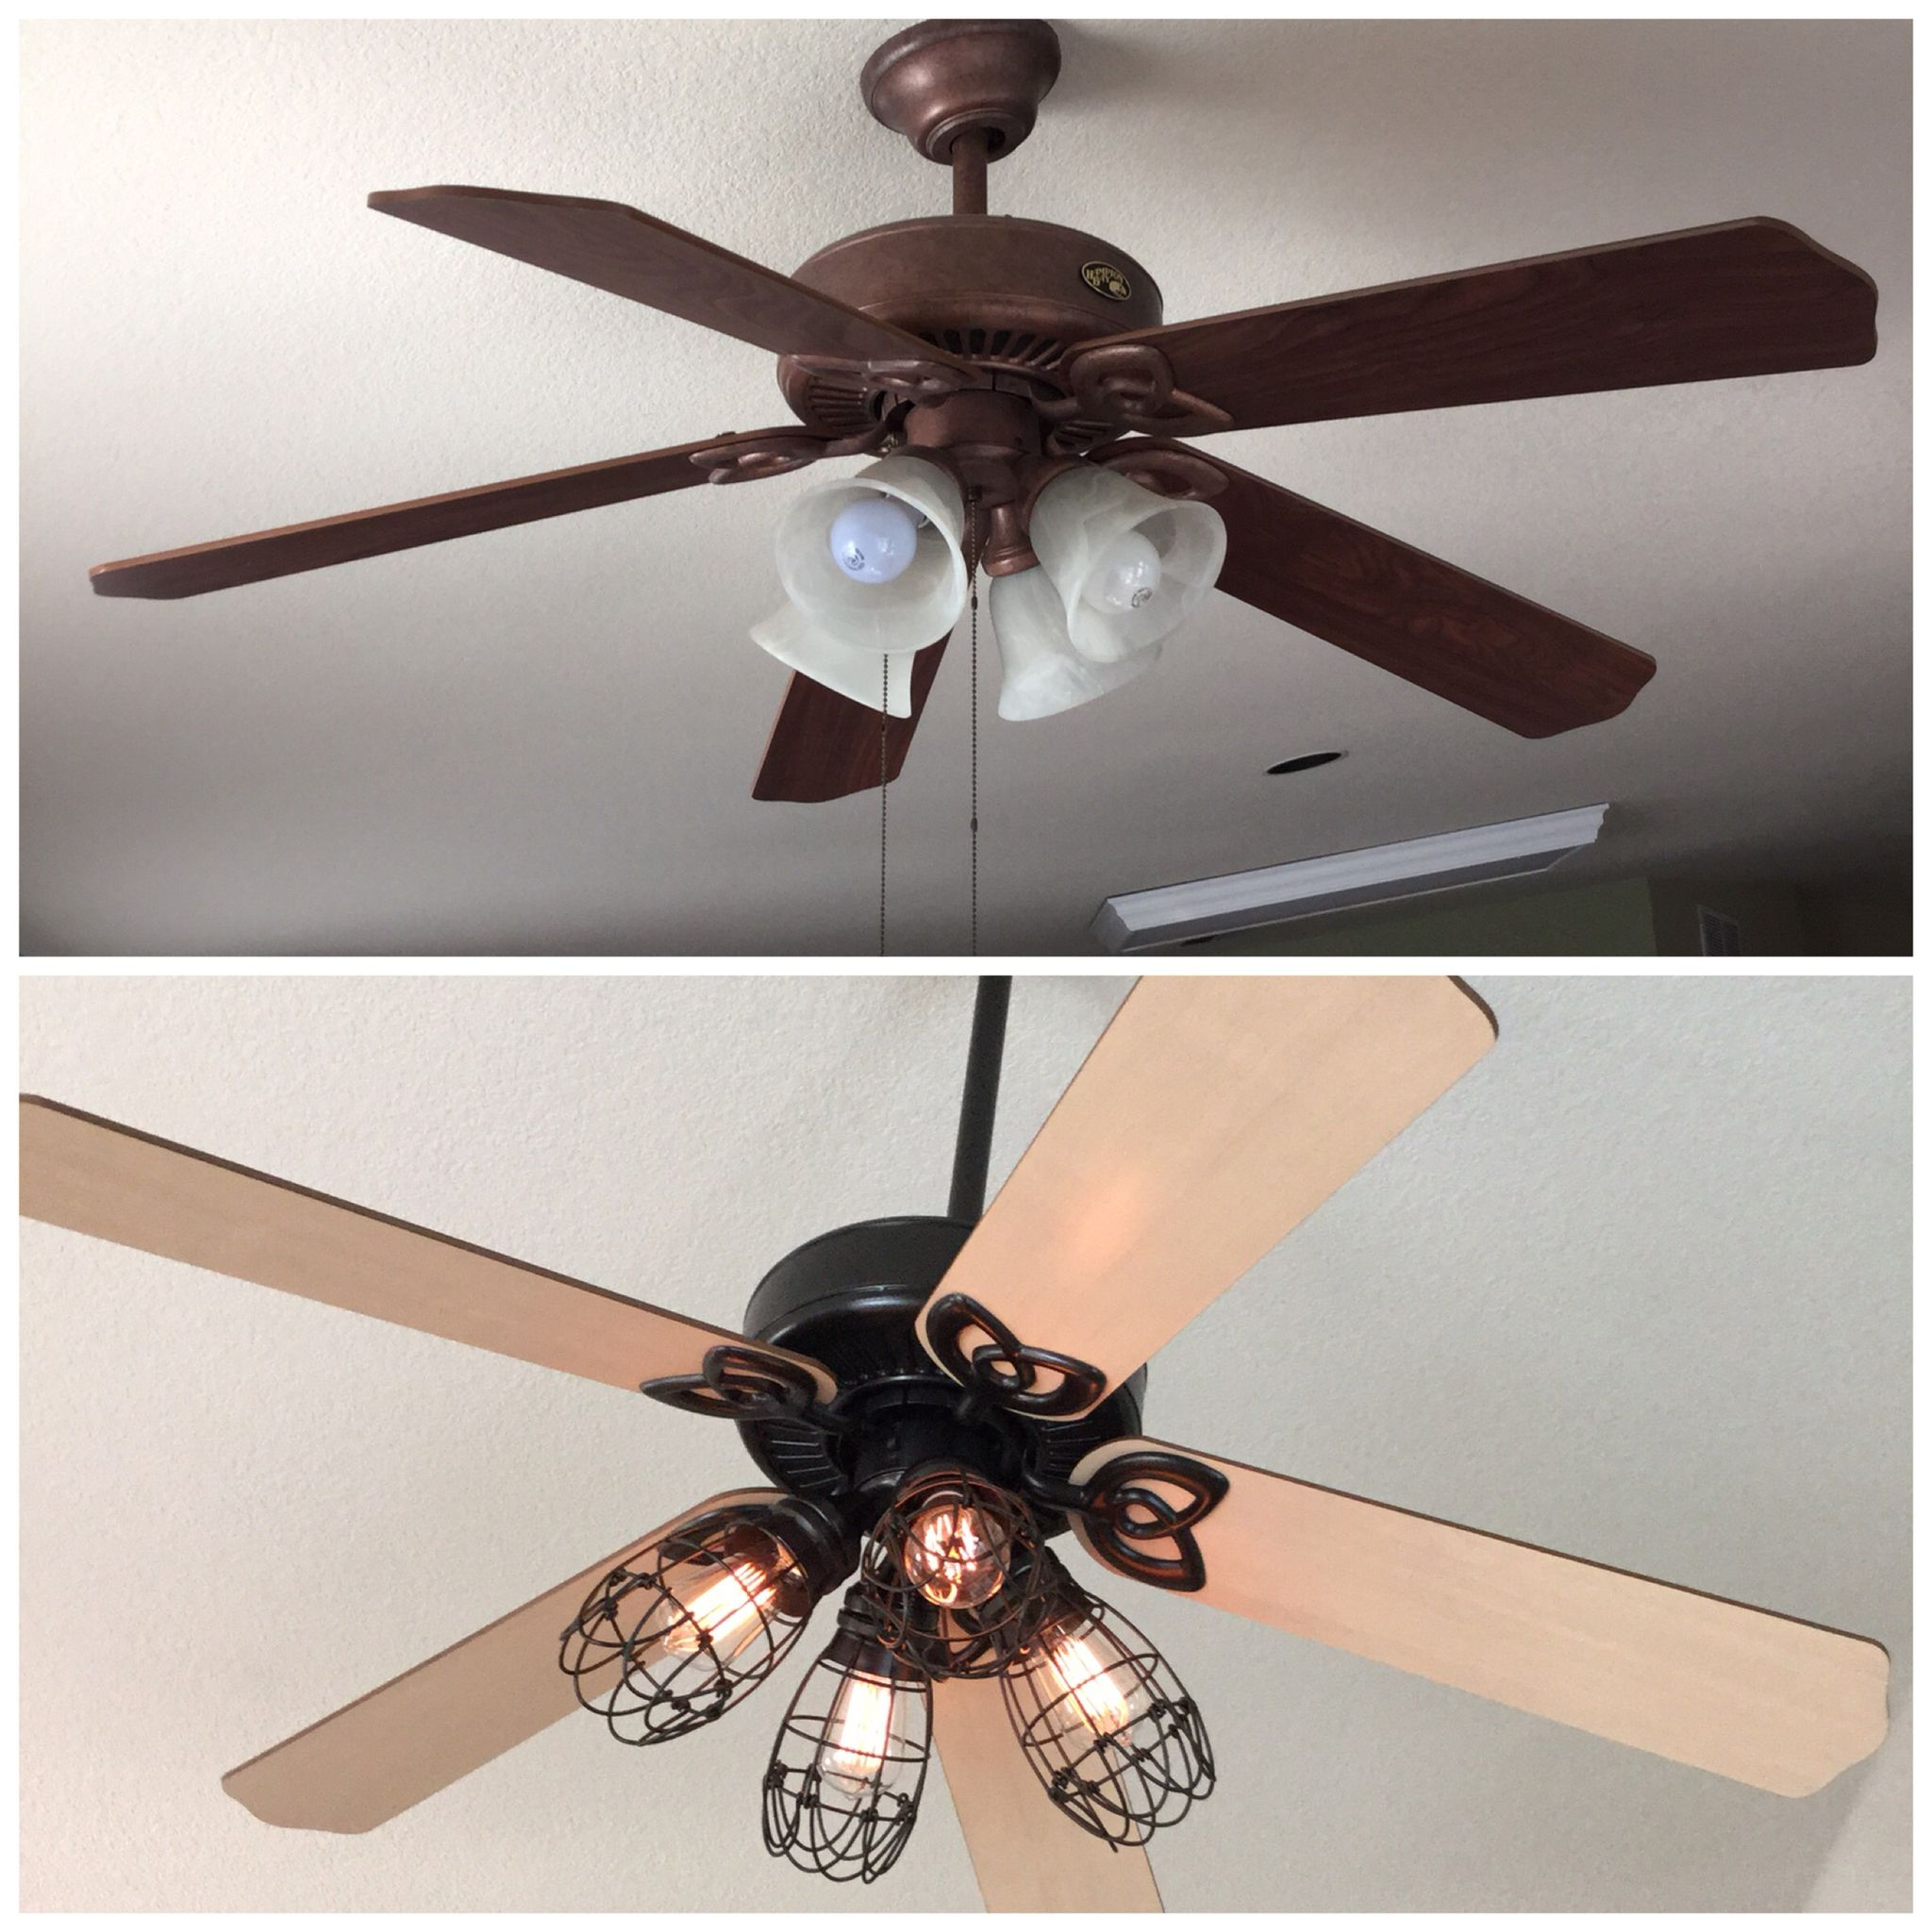 DIY ceiling fan makeover Add cage bulb guards and Edison bulbs